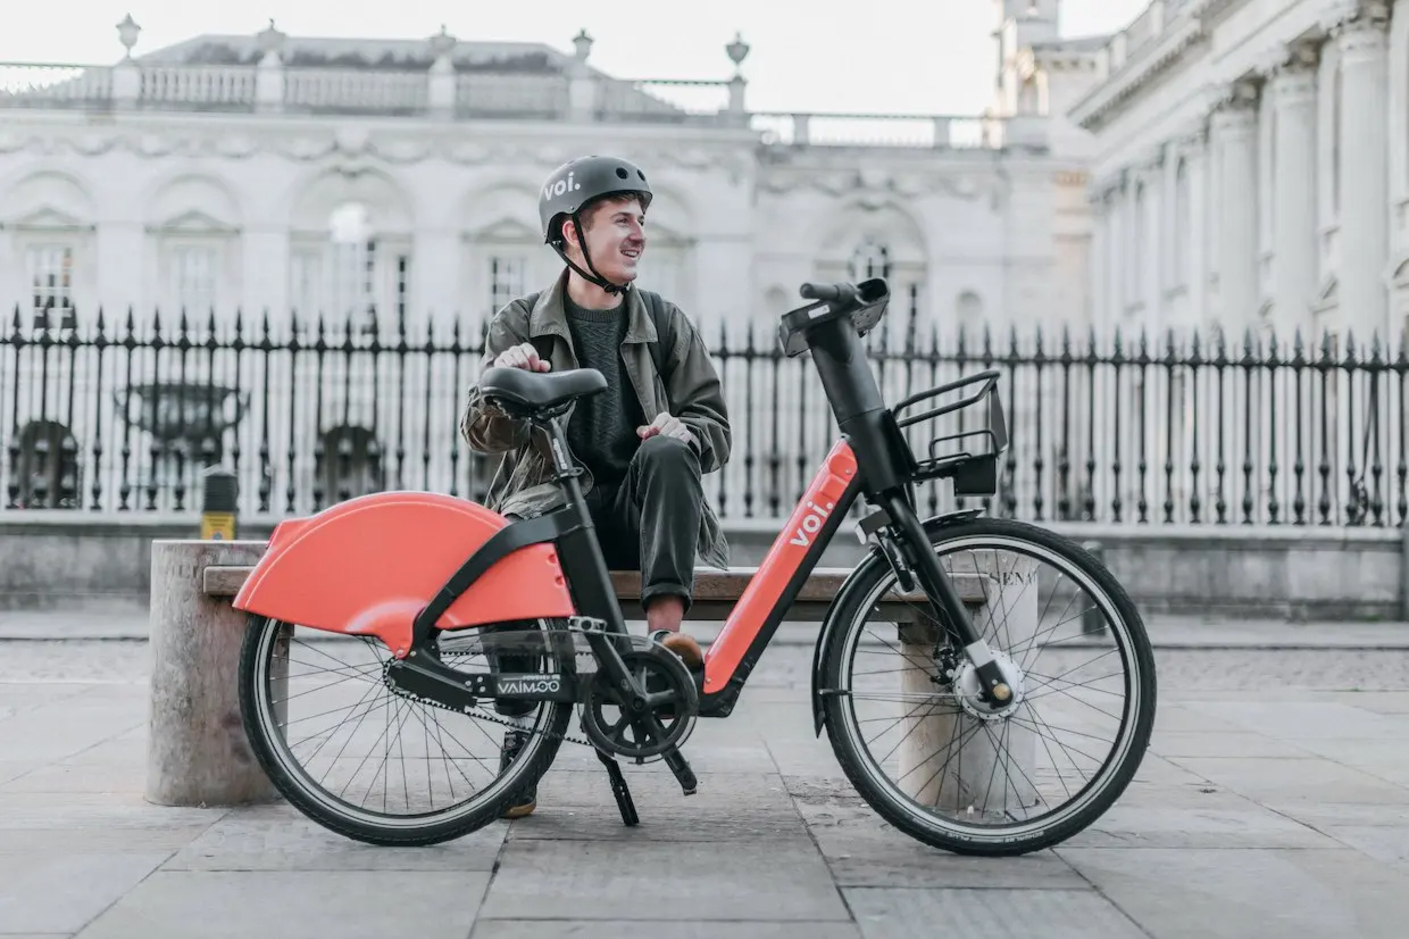 VOI chooses VAIMOO's Technology for its e-bike debut in UK